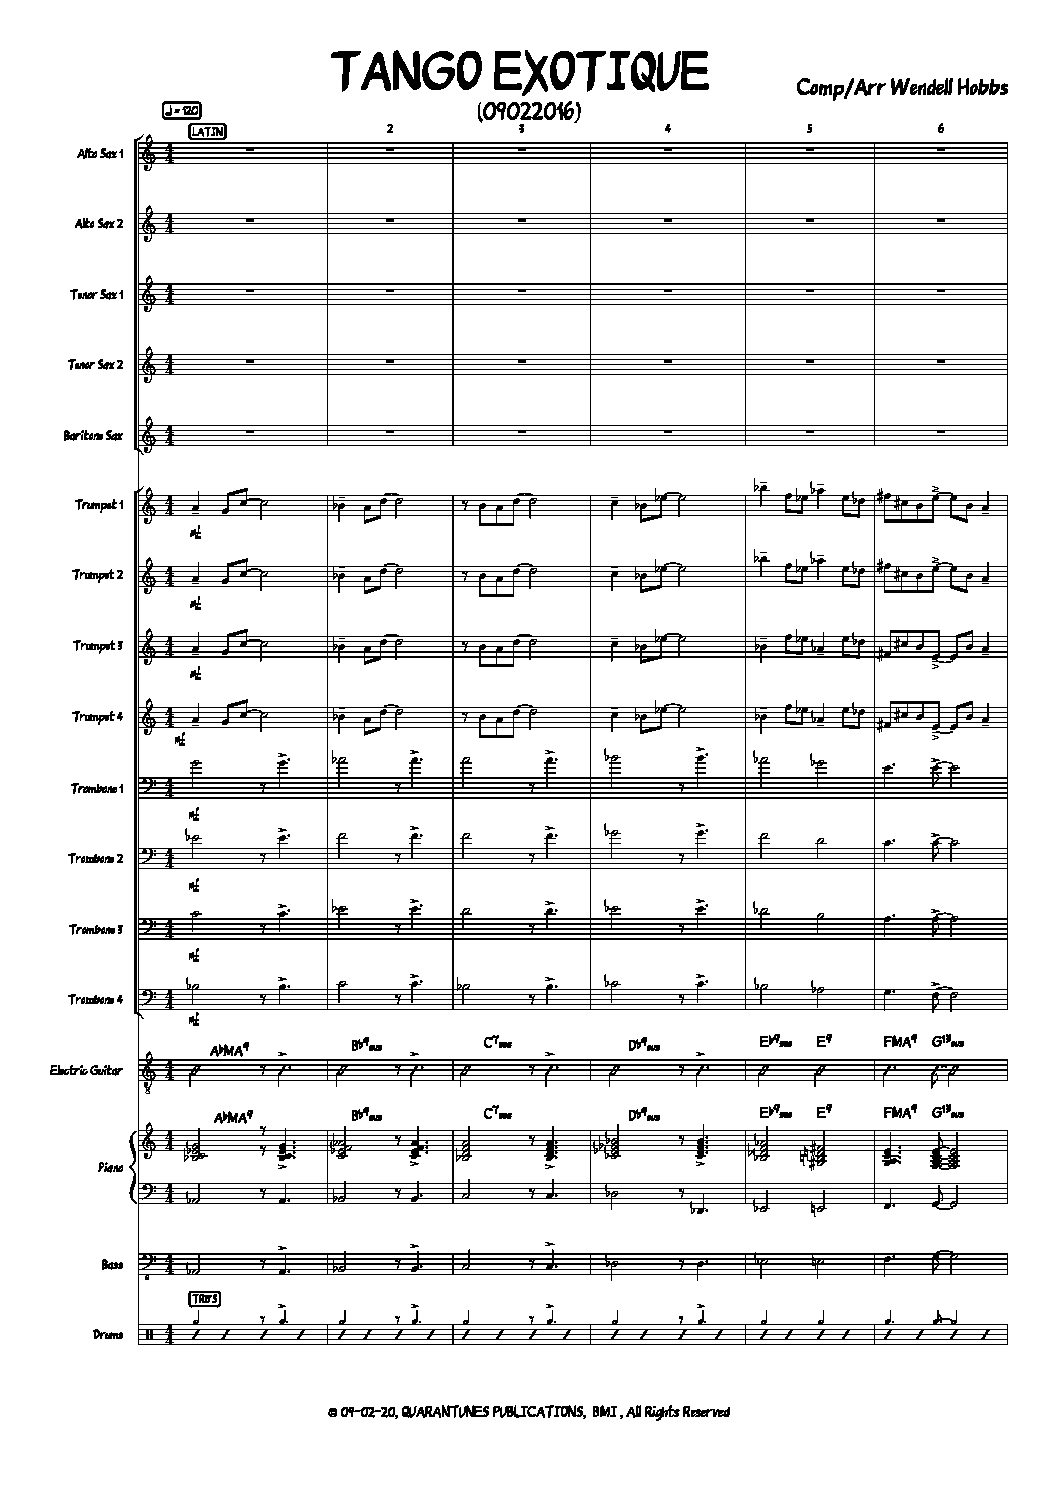 TANGO EXOTIQUE Score and Parts copy 2 pdf